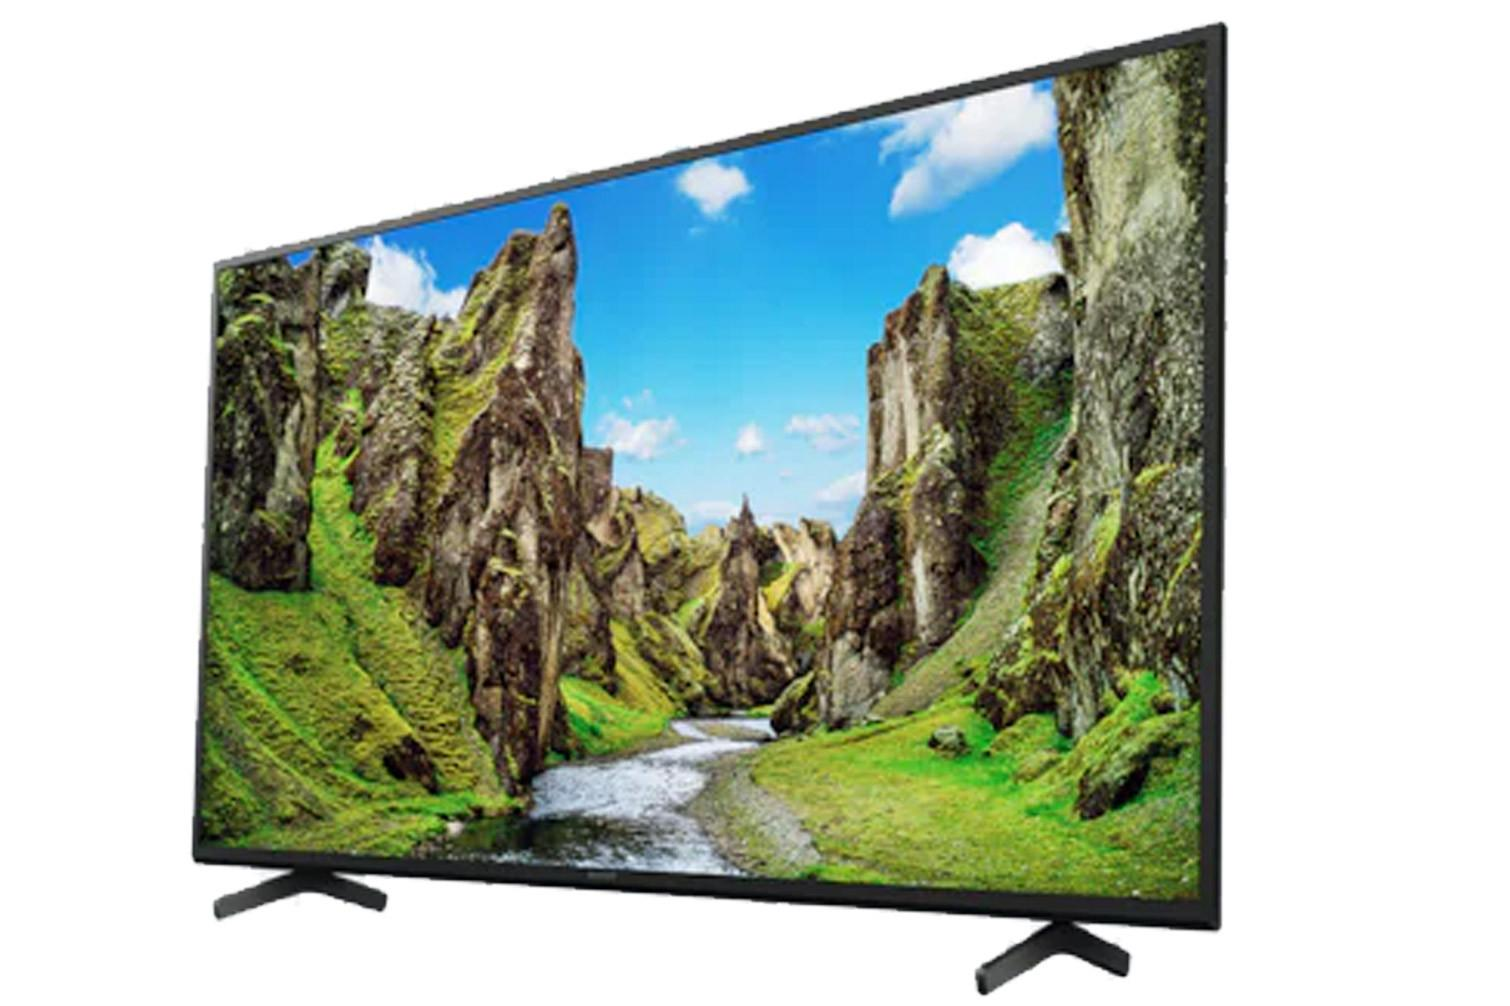 Smart Tivi 4K Sony KD-43X75 43 inch 4K HDR Android TV